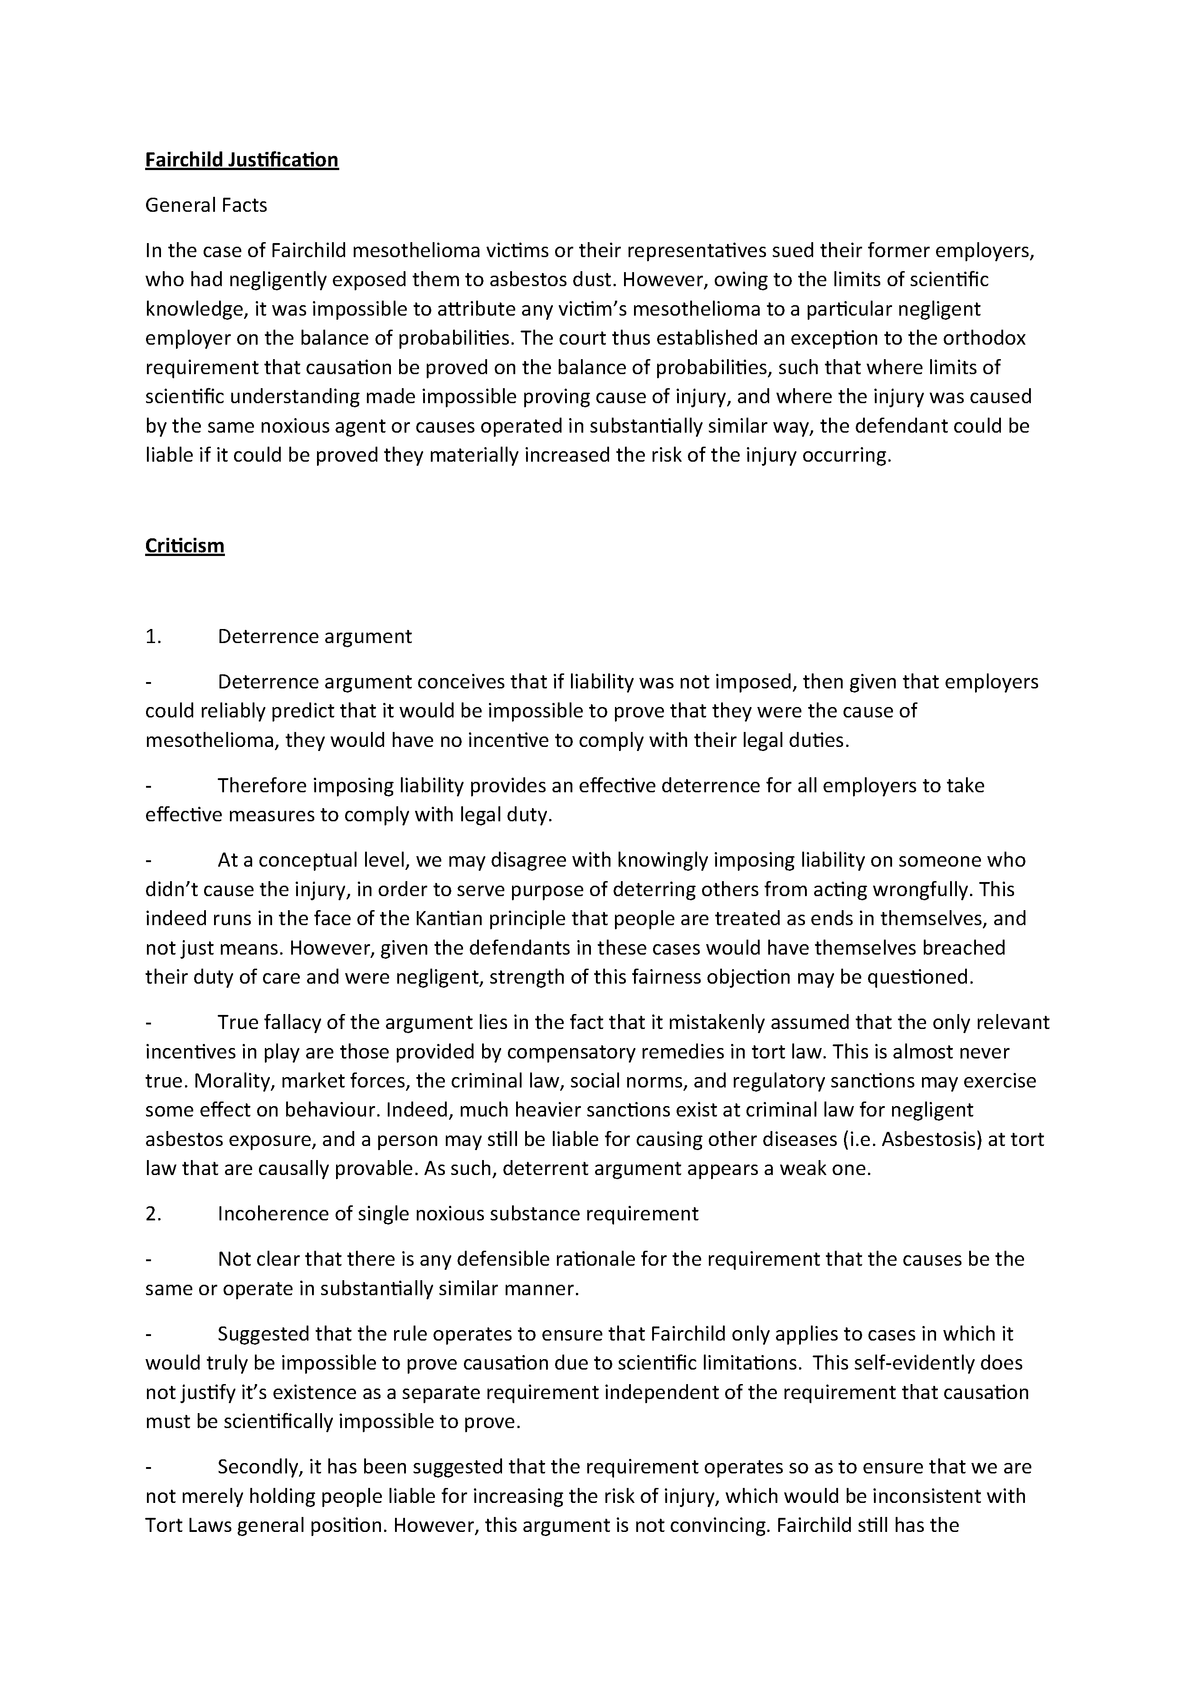 Accounting research proposal